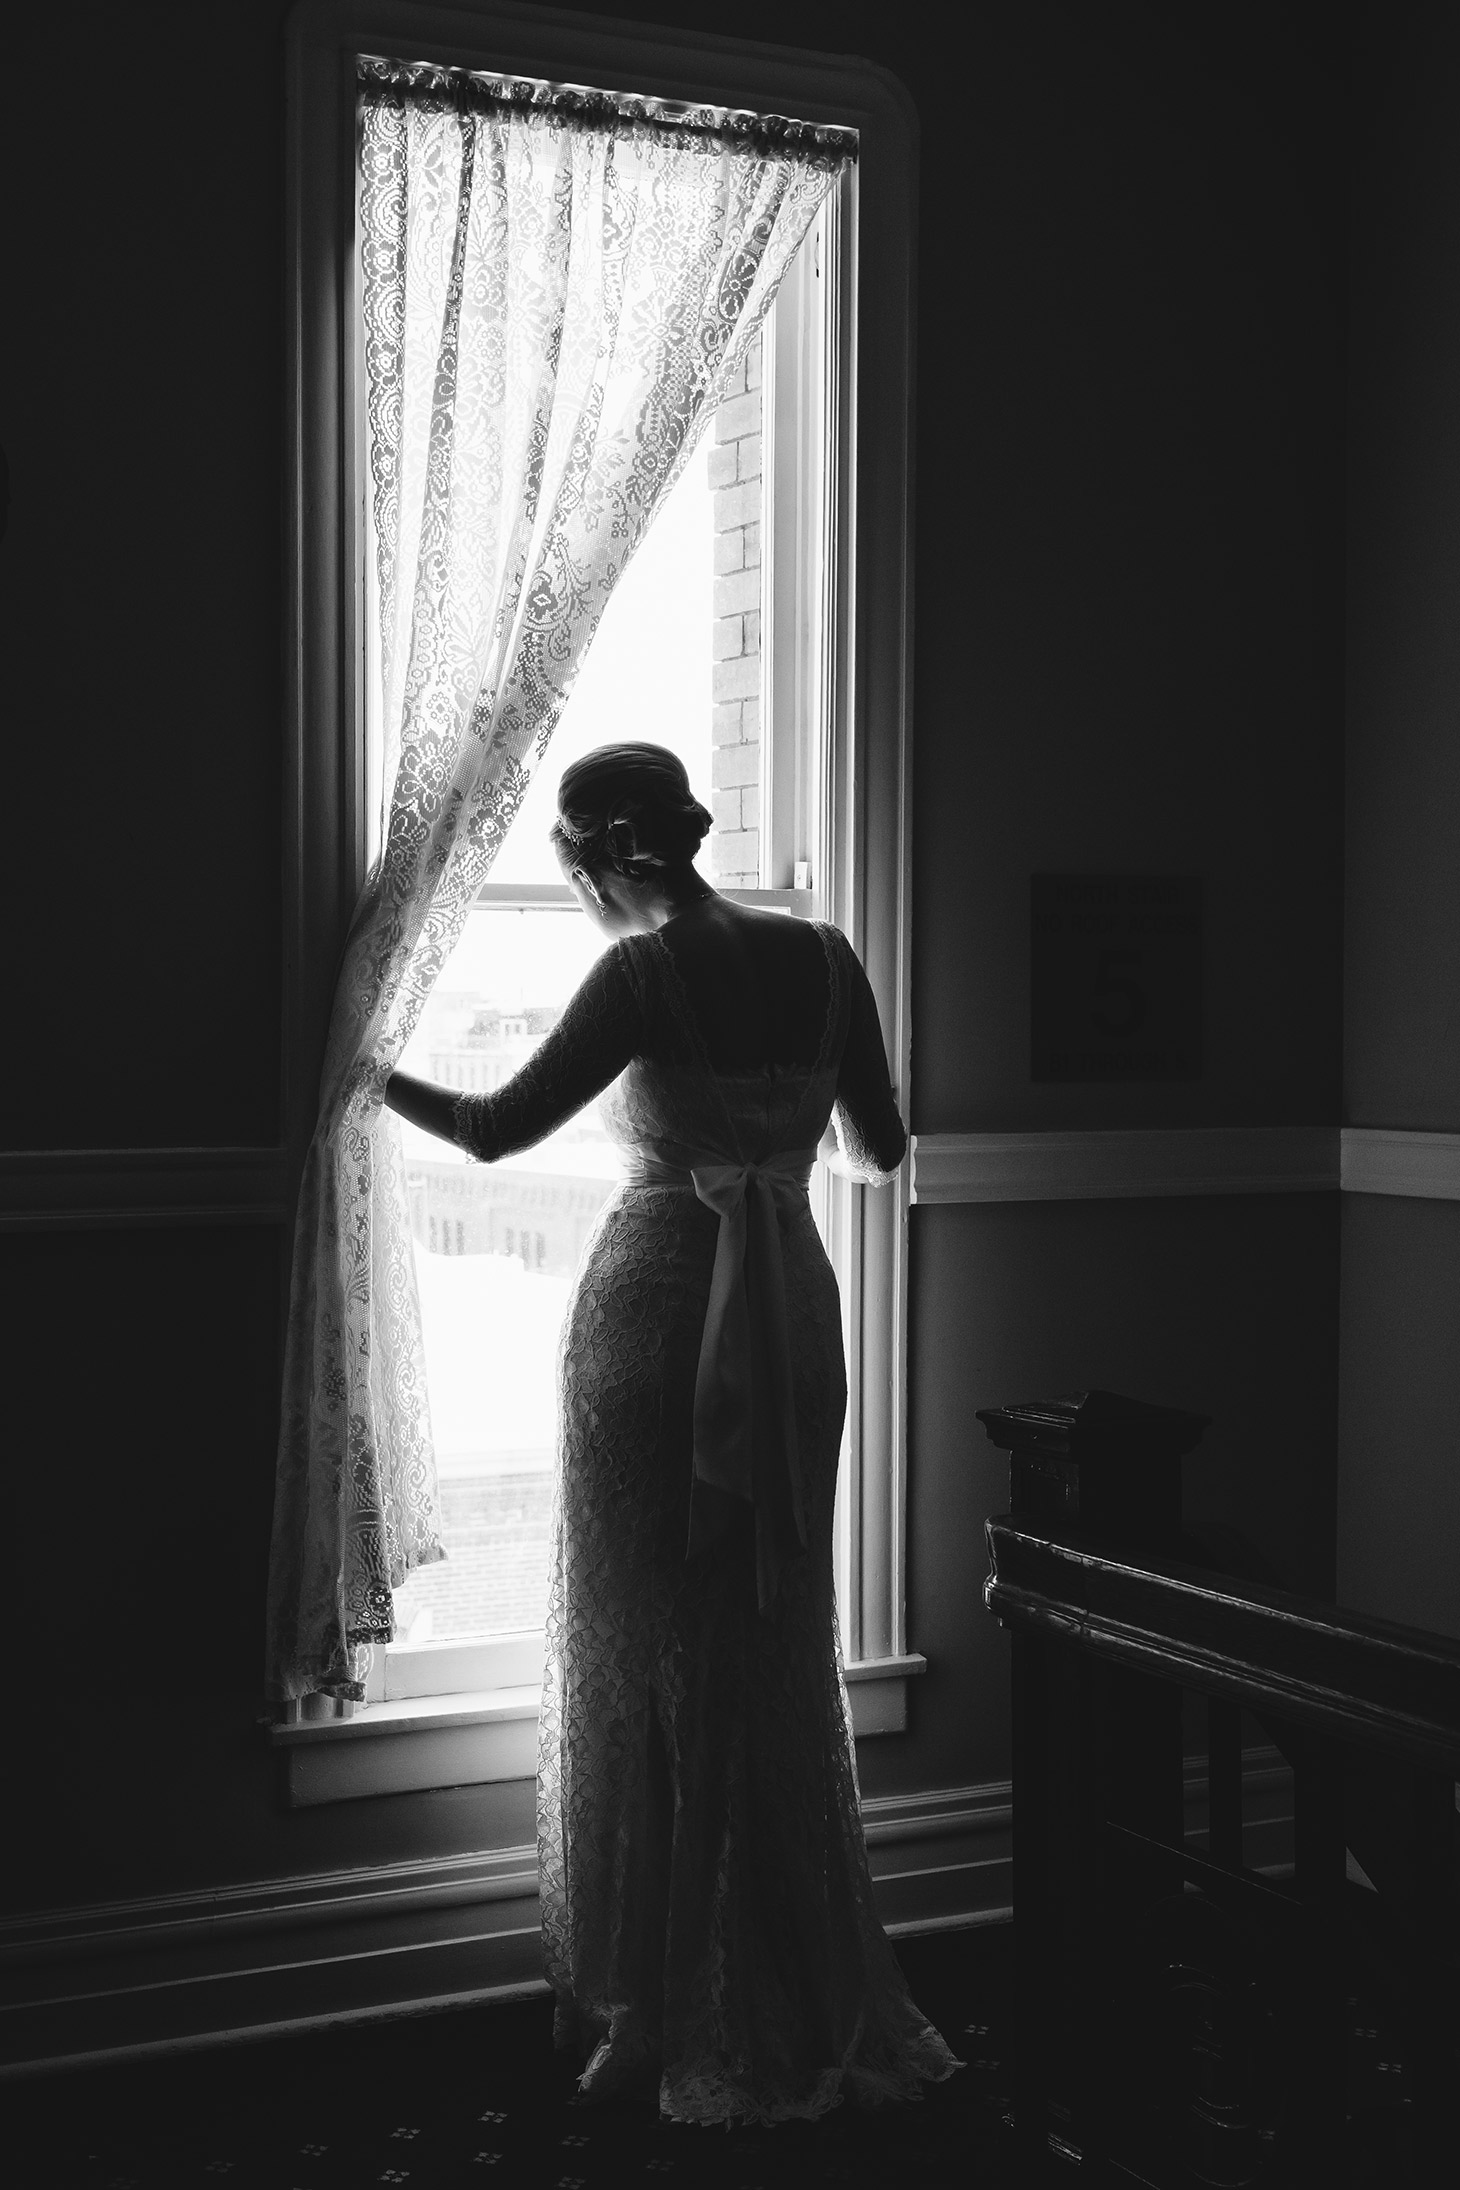 Megan-Newton-Photography-Best-Wedding-Photos-2015-084